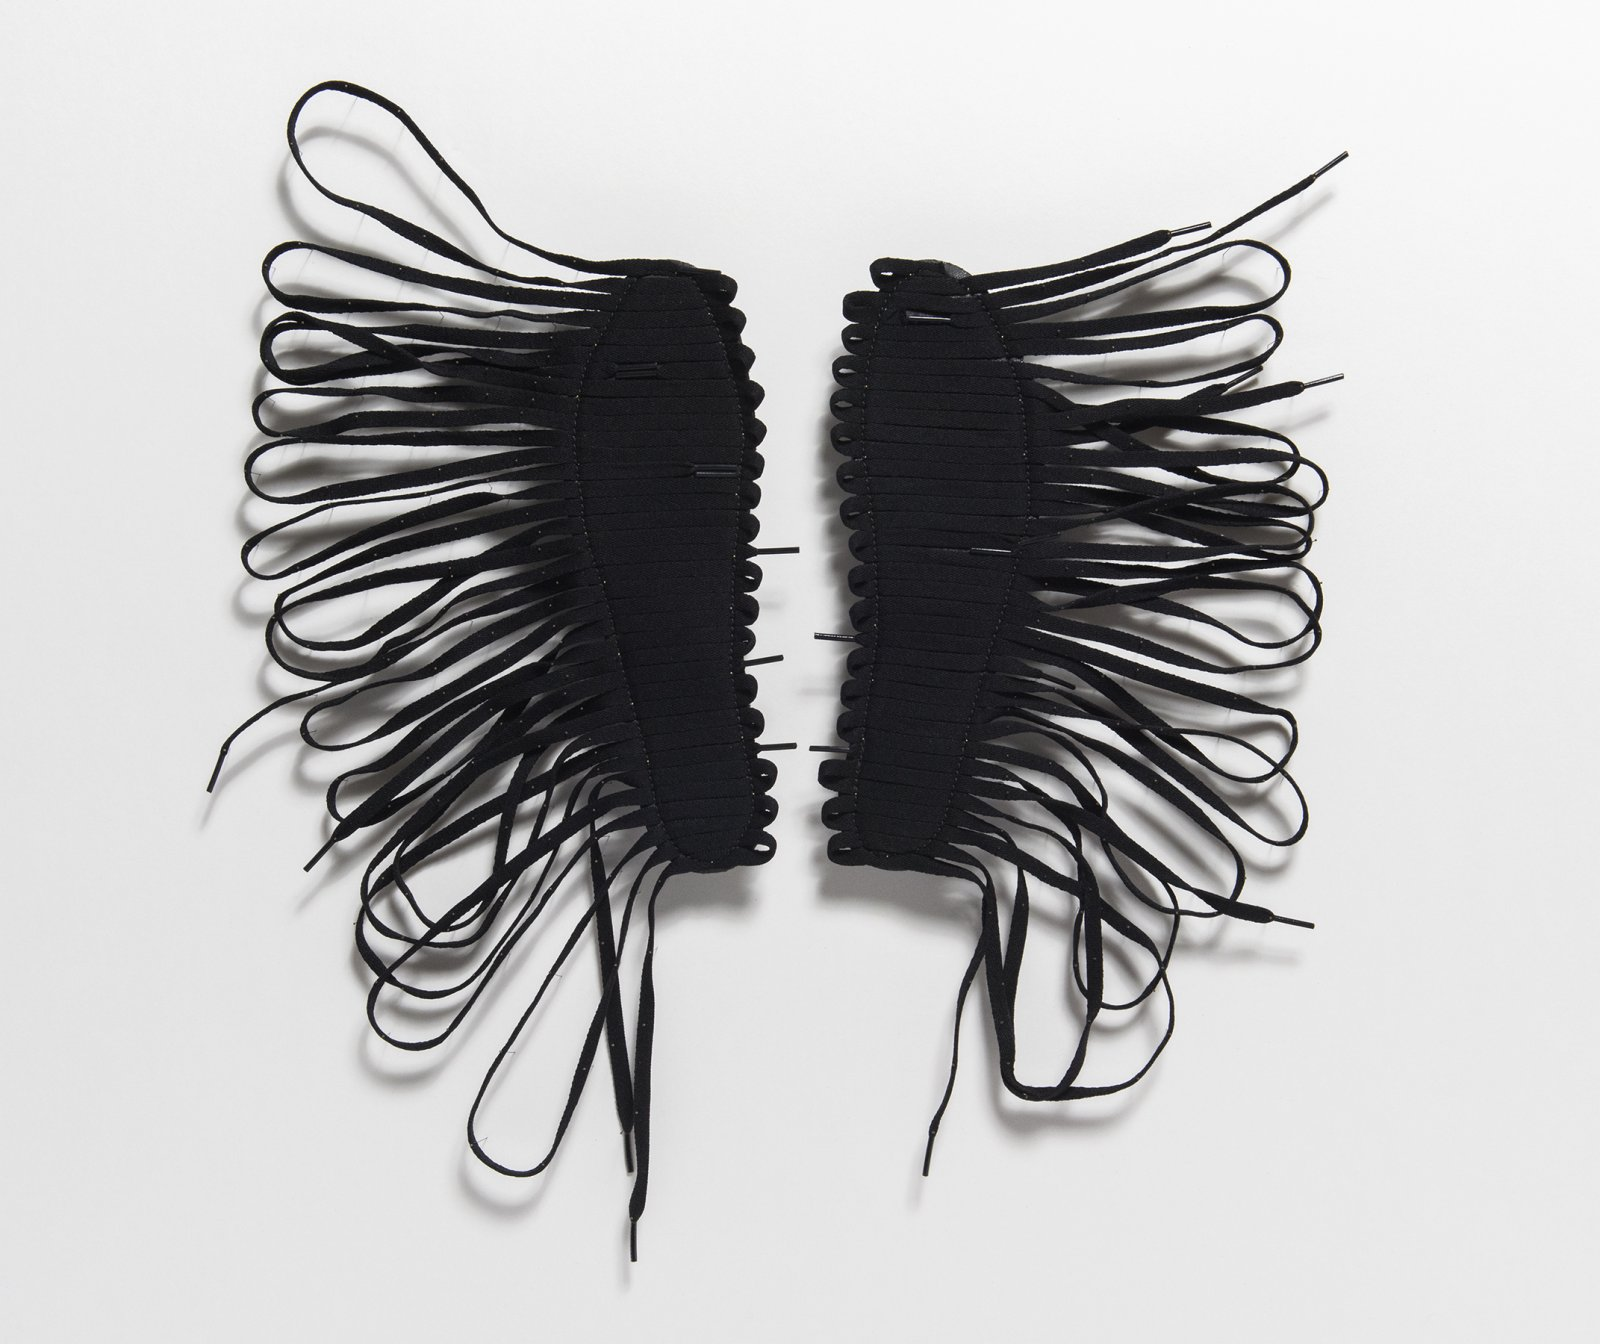 Brian Jungen,Cassius, 2016, air jordan insoles, shoelaces, insect pins, 31 x 31 x 1 in. (81 x 81 x 3 cm). Courtesy Casey Kaplan, New York